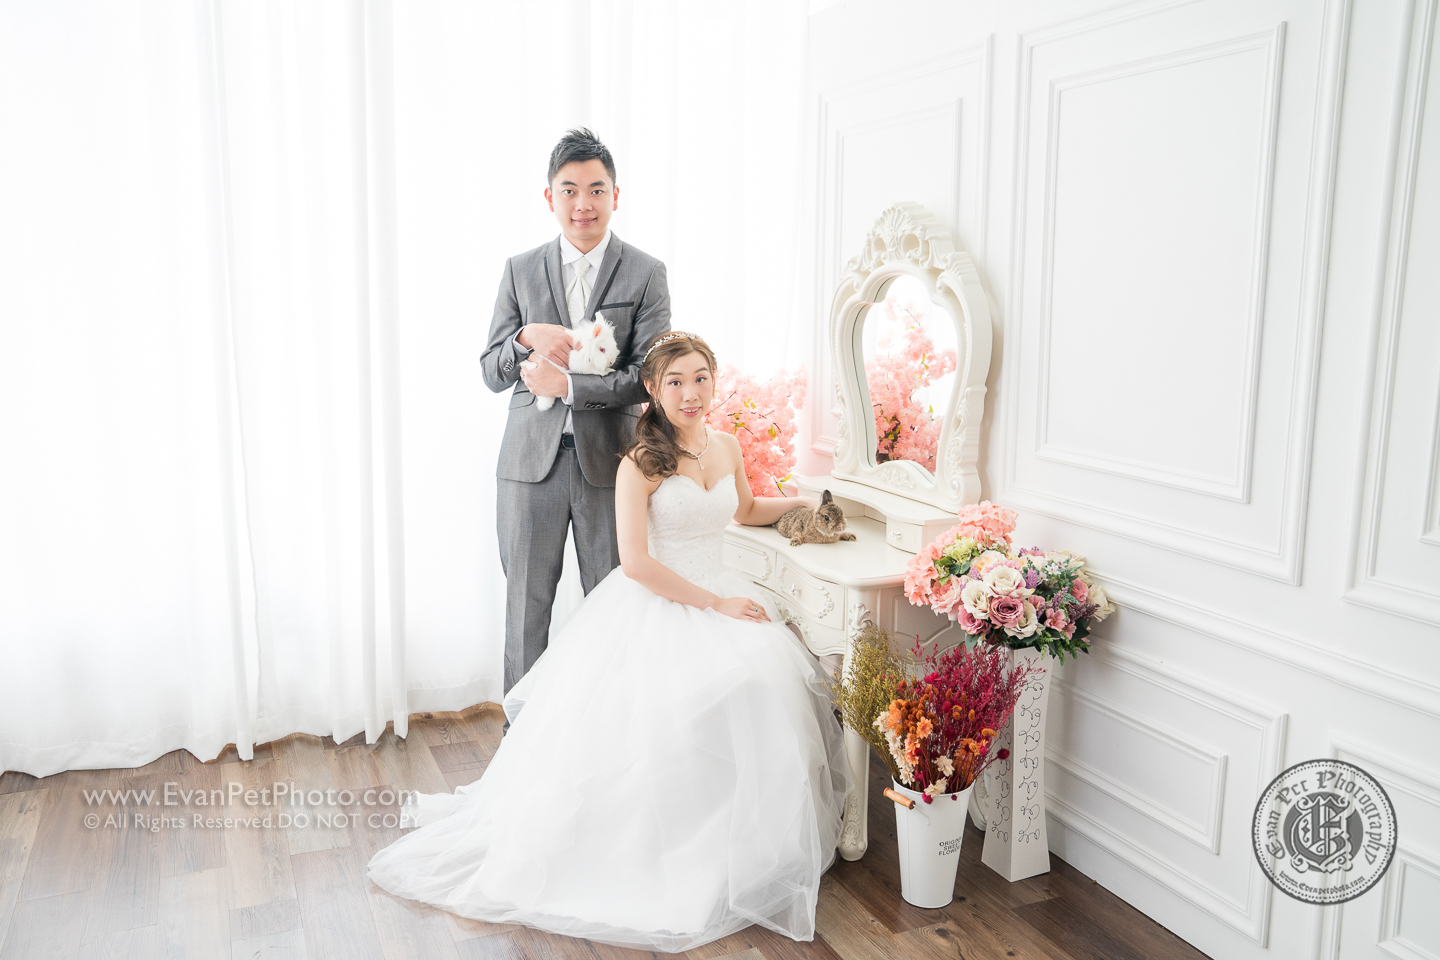 Prewedding,pre-wedding,studio prewedding, rabbit prewedding, 婚紗攝影, 寵物婚紗攝影, 兔兔攝影, 影樓pre-wedding